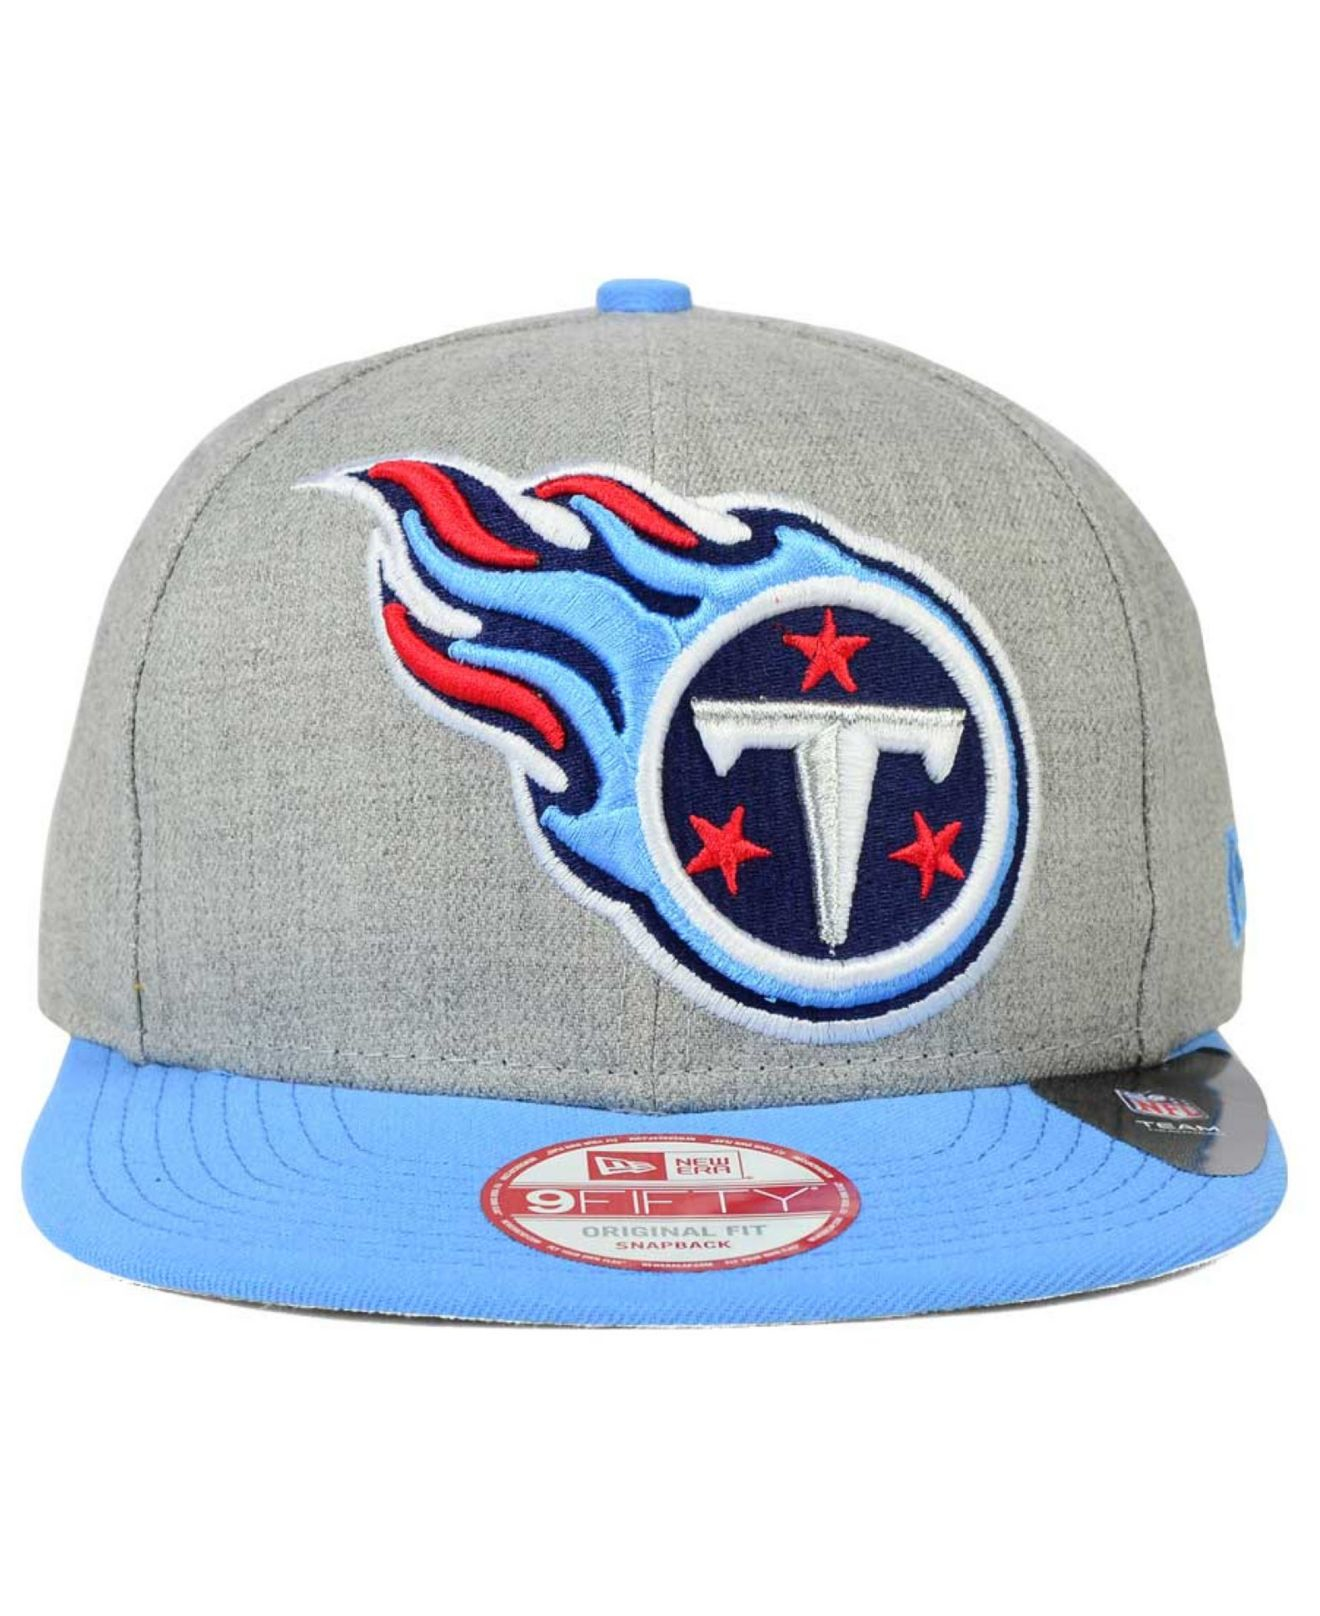 f271d7100 Lyst - Ktz Tennessee Titans Grand 9fifty Snapback Cap in Gray for Men